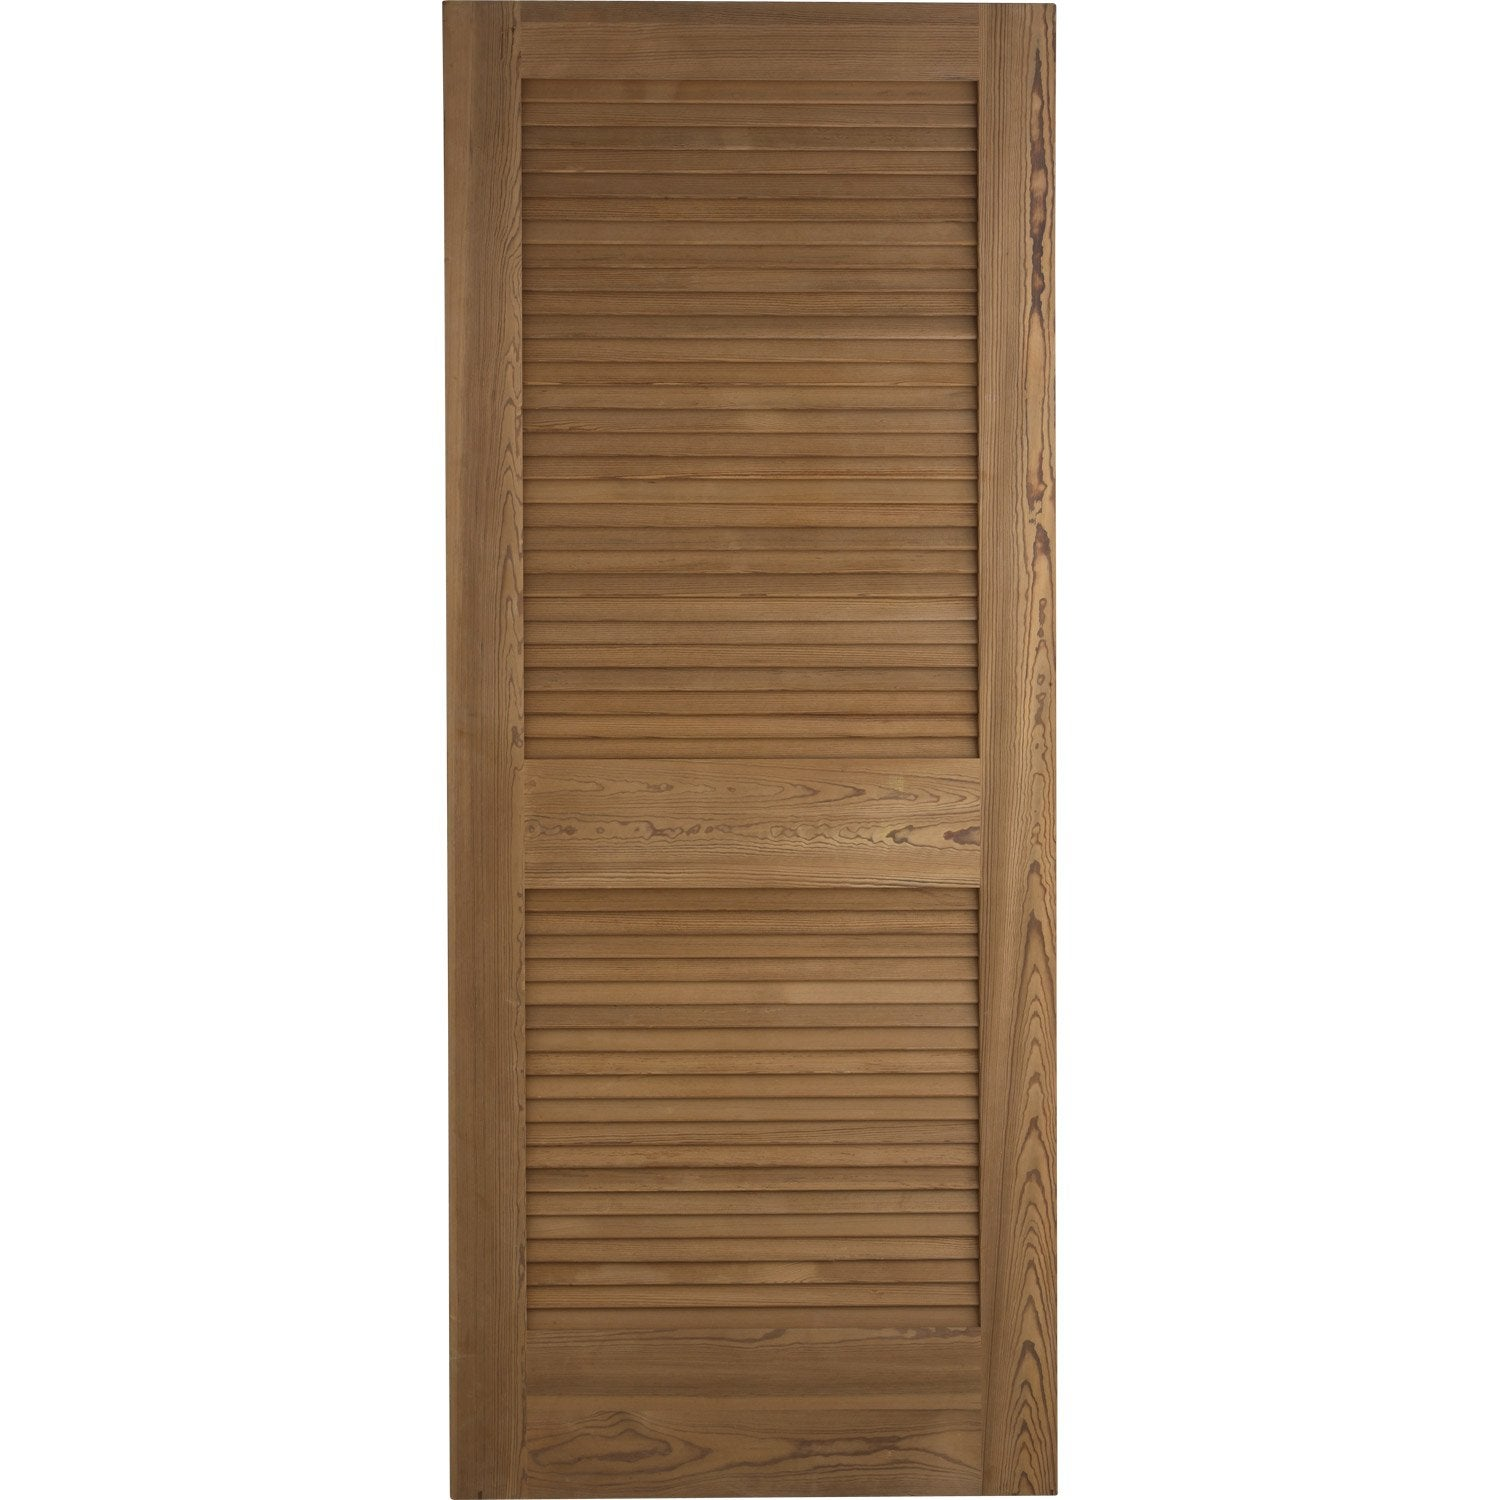 Porte coulissante pin plaqu marron java artens 204 x 83 cm leroy merlin - Porte accordeon interieur leroy merlin ...